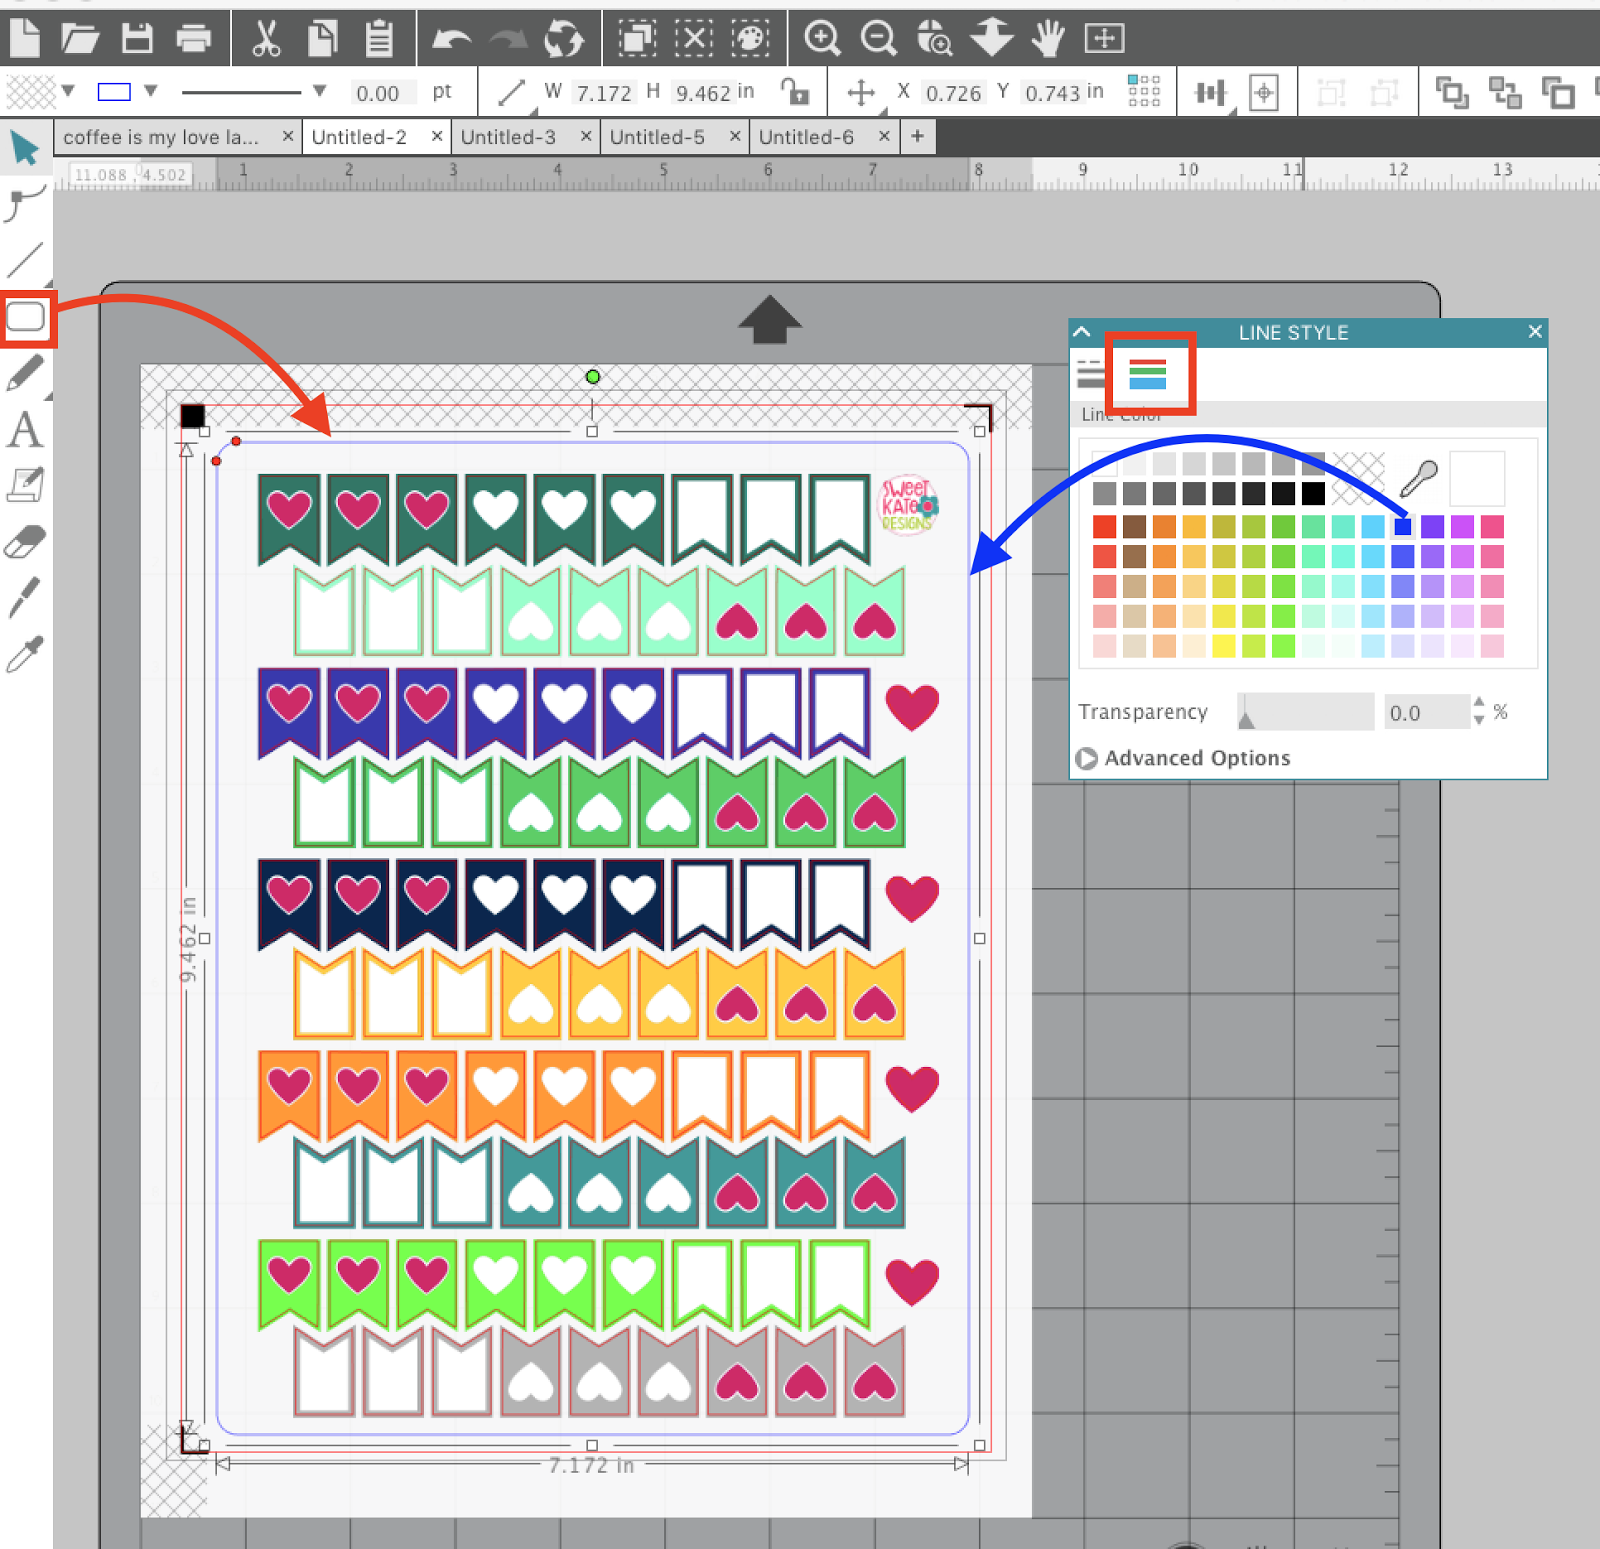 photograph relating to Printable Sticker Sheets identified as Promoting Sticker Sheets: Silhouette Studio Insider secrets in direction of Getting rid of